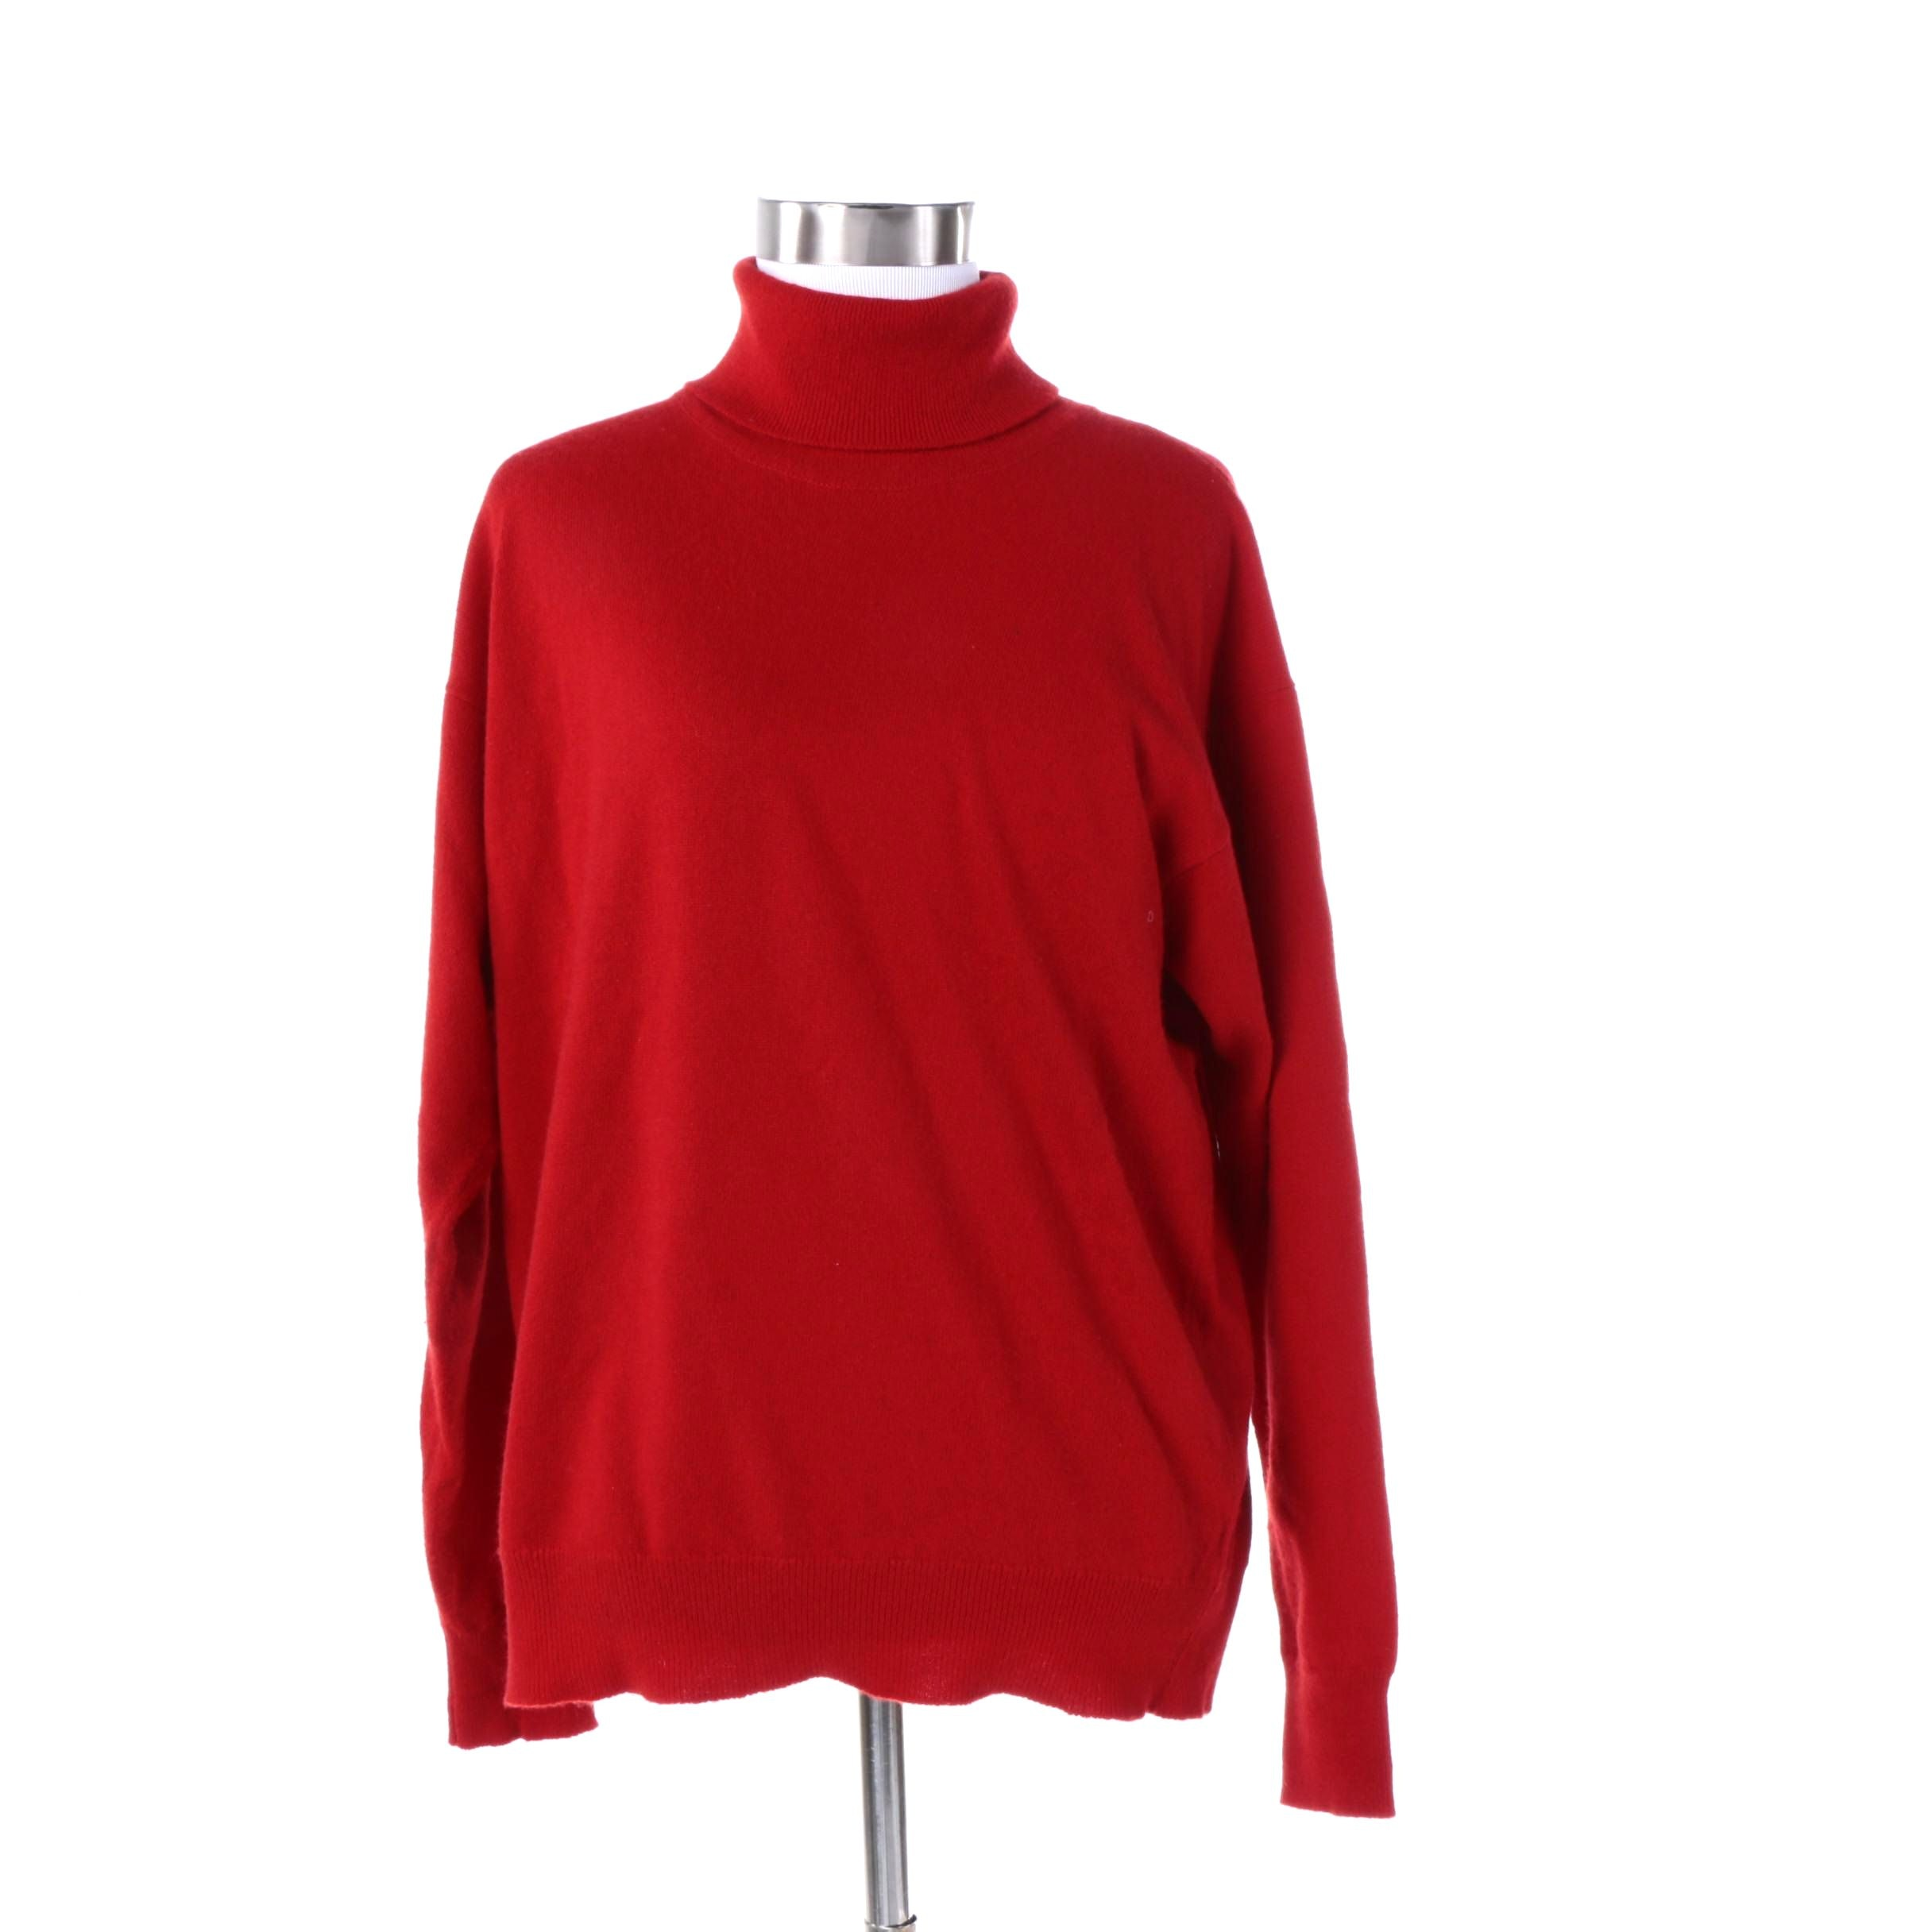 Women's Red Cashmere Sweater